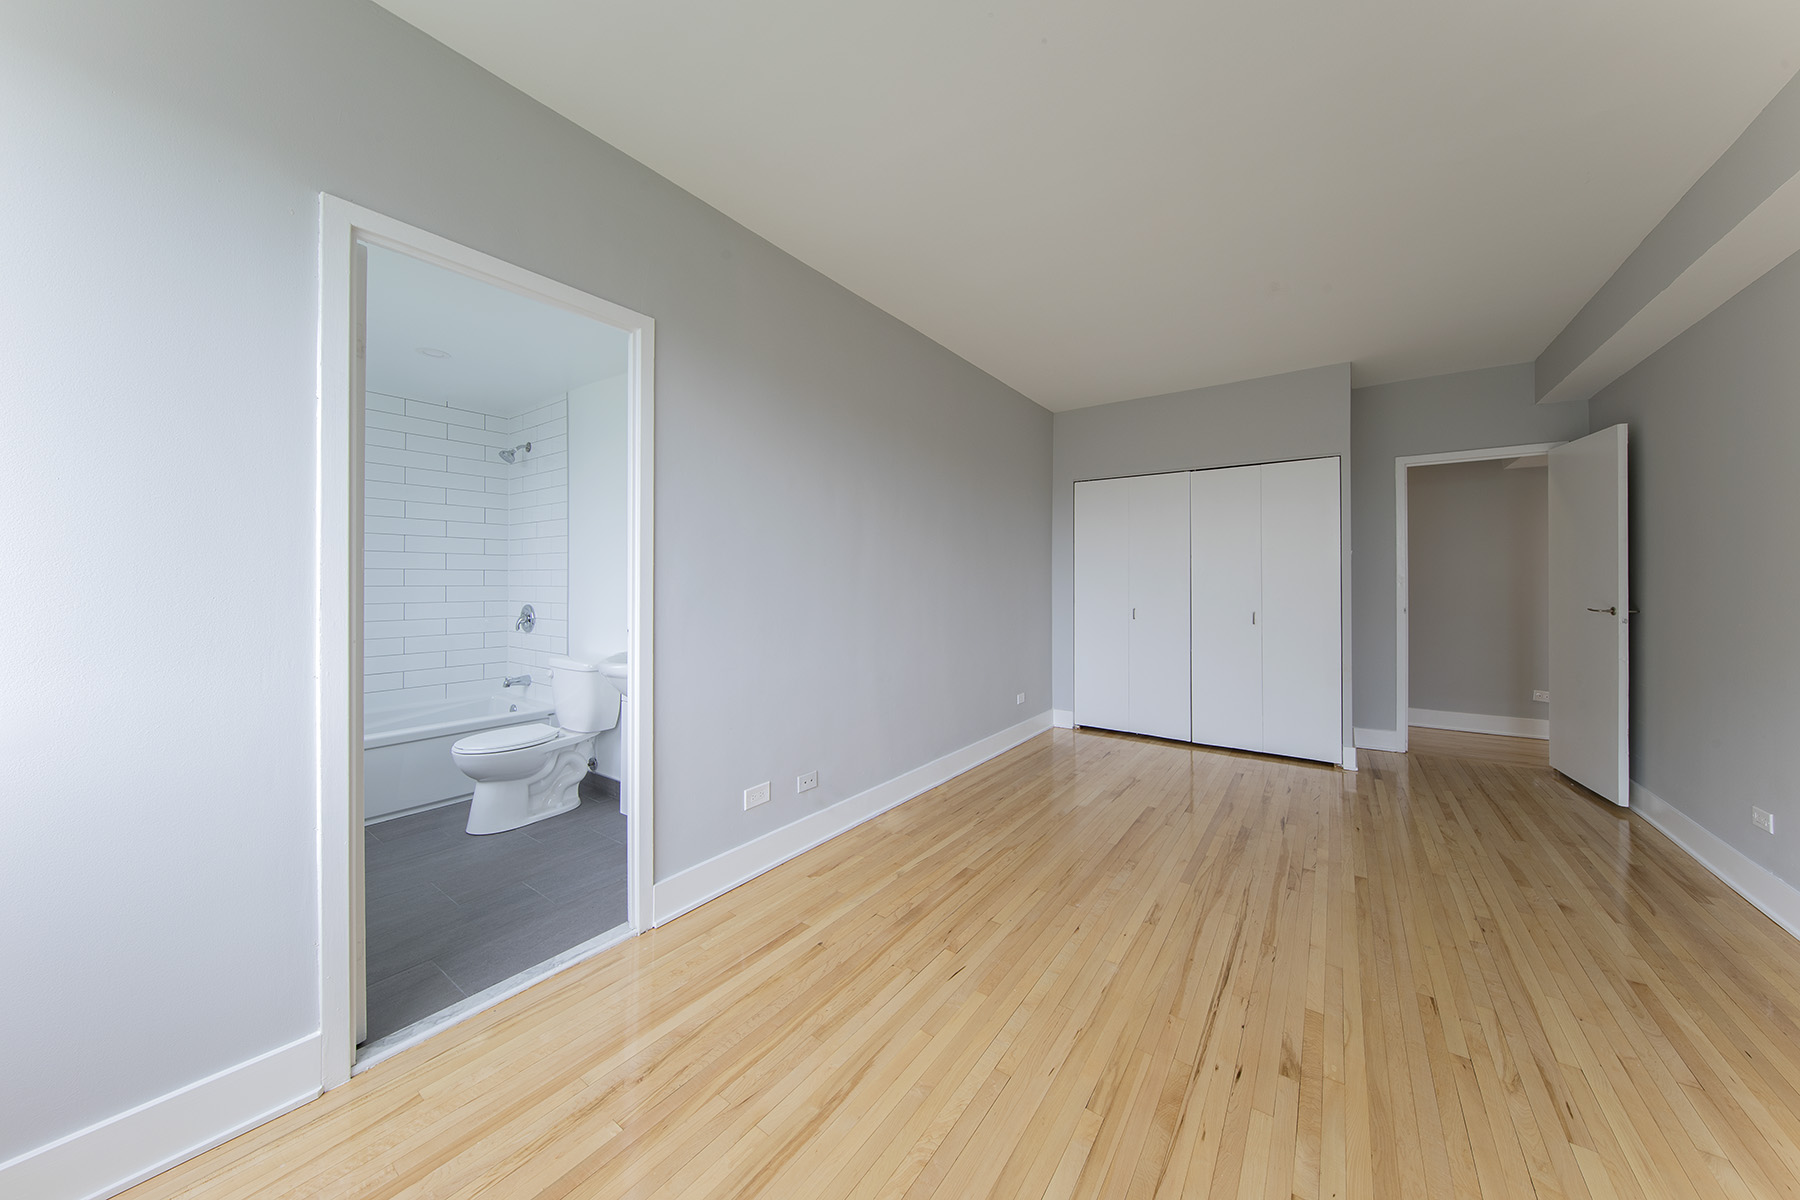 1 bedroom Apartments for rent in Cote-St-Luc at 5765 Cote St-Luc - Photo 05 - RentQuebecApartments – L401532